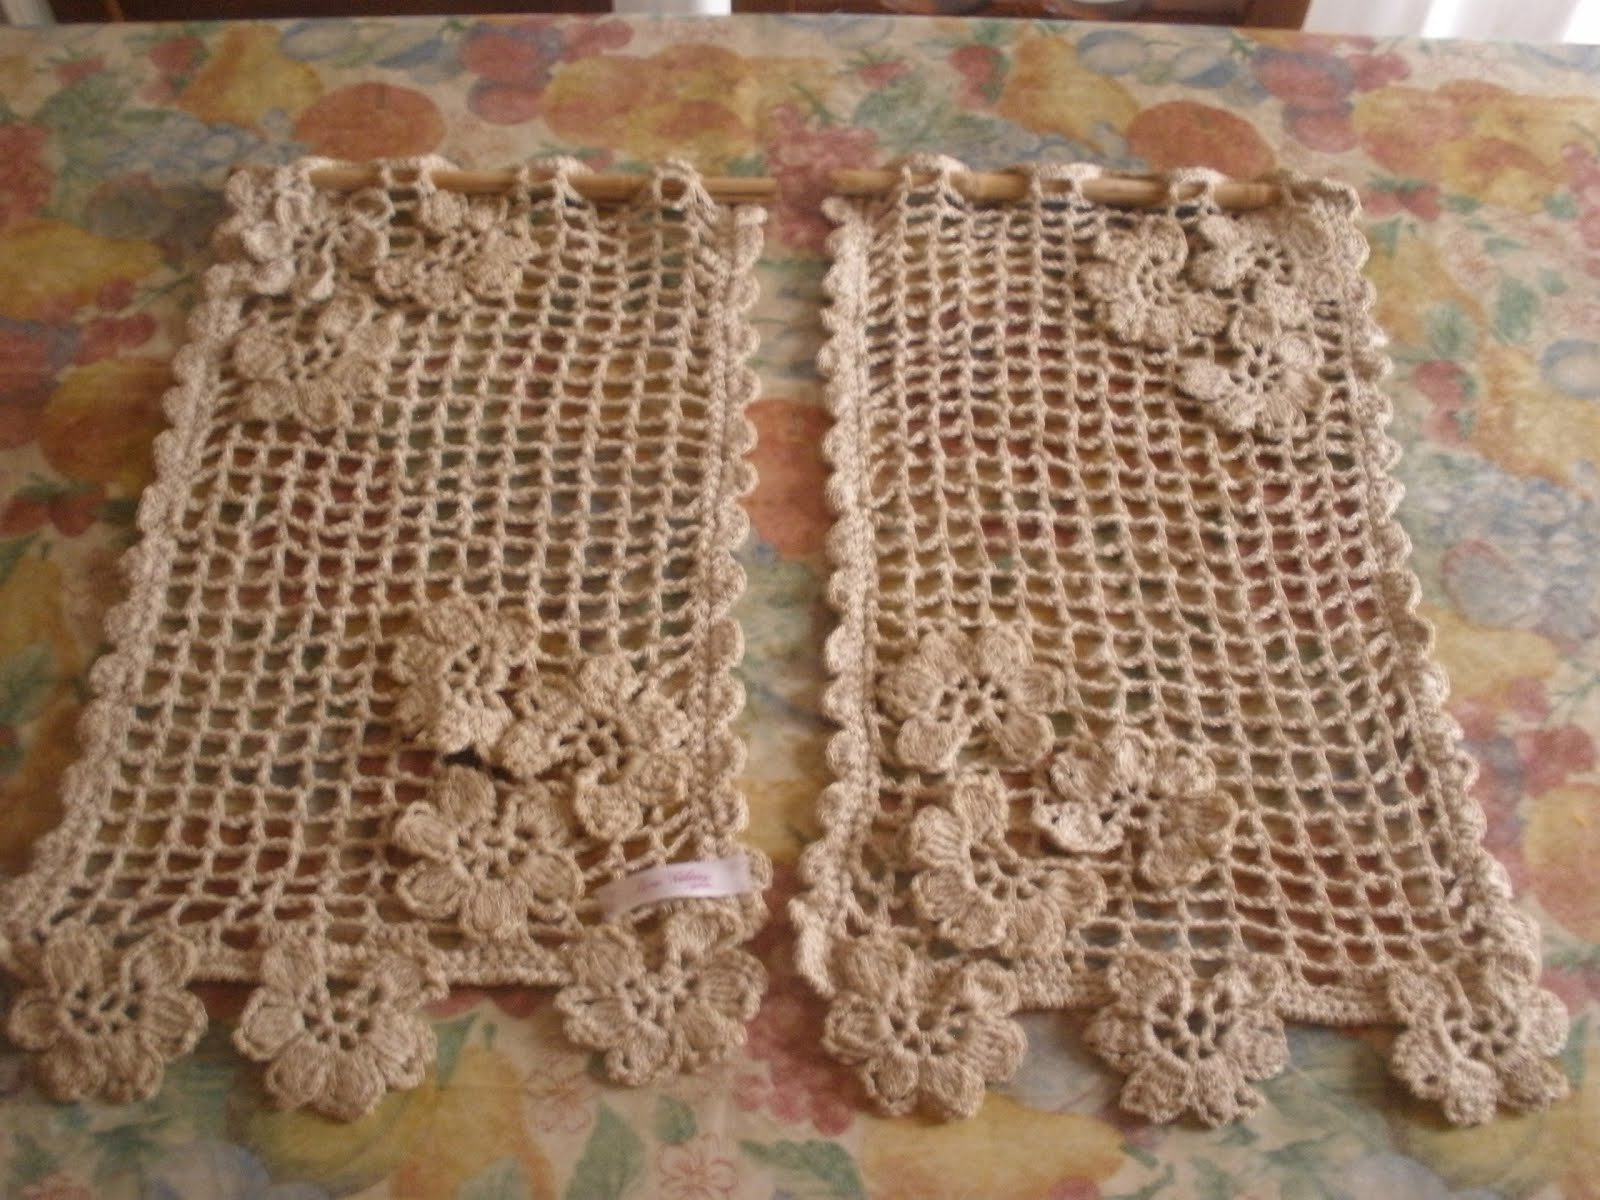 Tejidos a crochet ganchillo patrones cortina para share the knownledge - Cortinas a ganchillo patrones ...